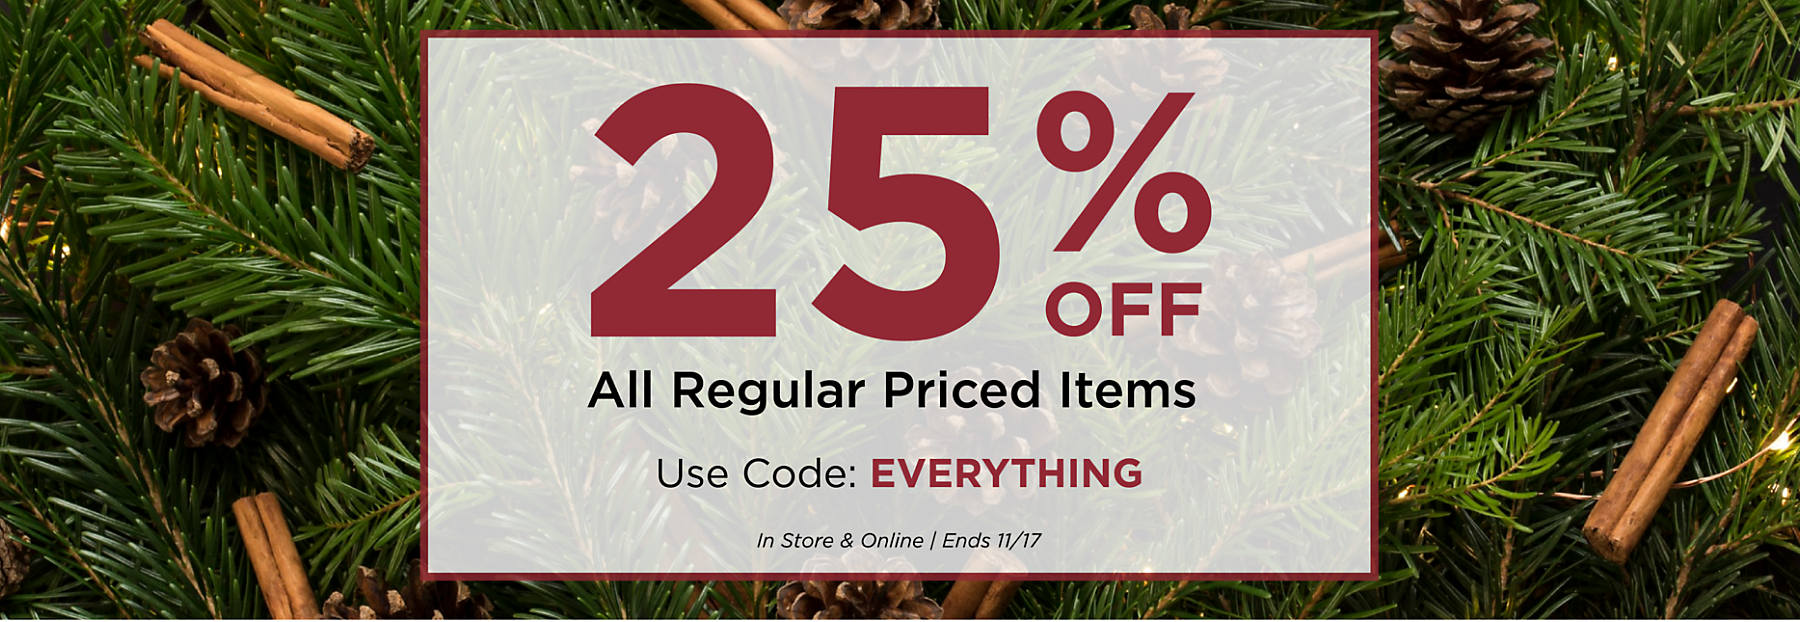 25% Off Your Entire Regular Price Purchase